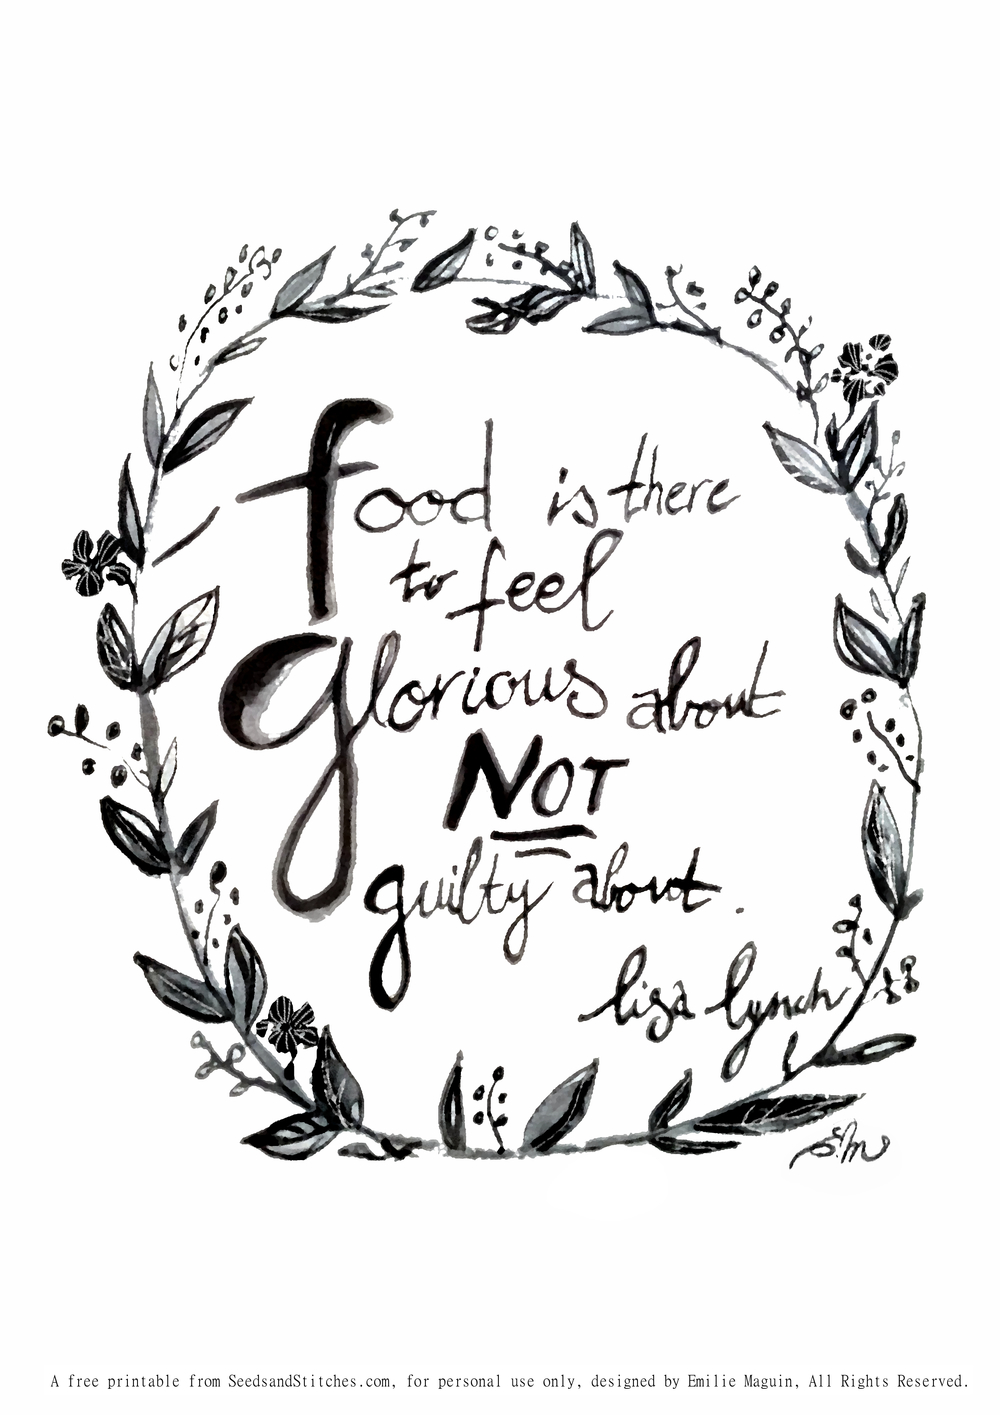 Food is glorious quote by Lisa Lynch illustrated by Emilie Maguin for Seeds and Stitches blog.